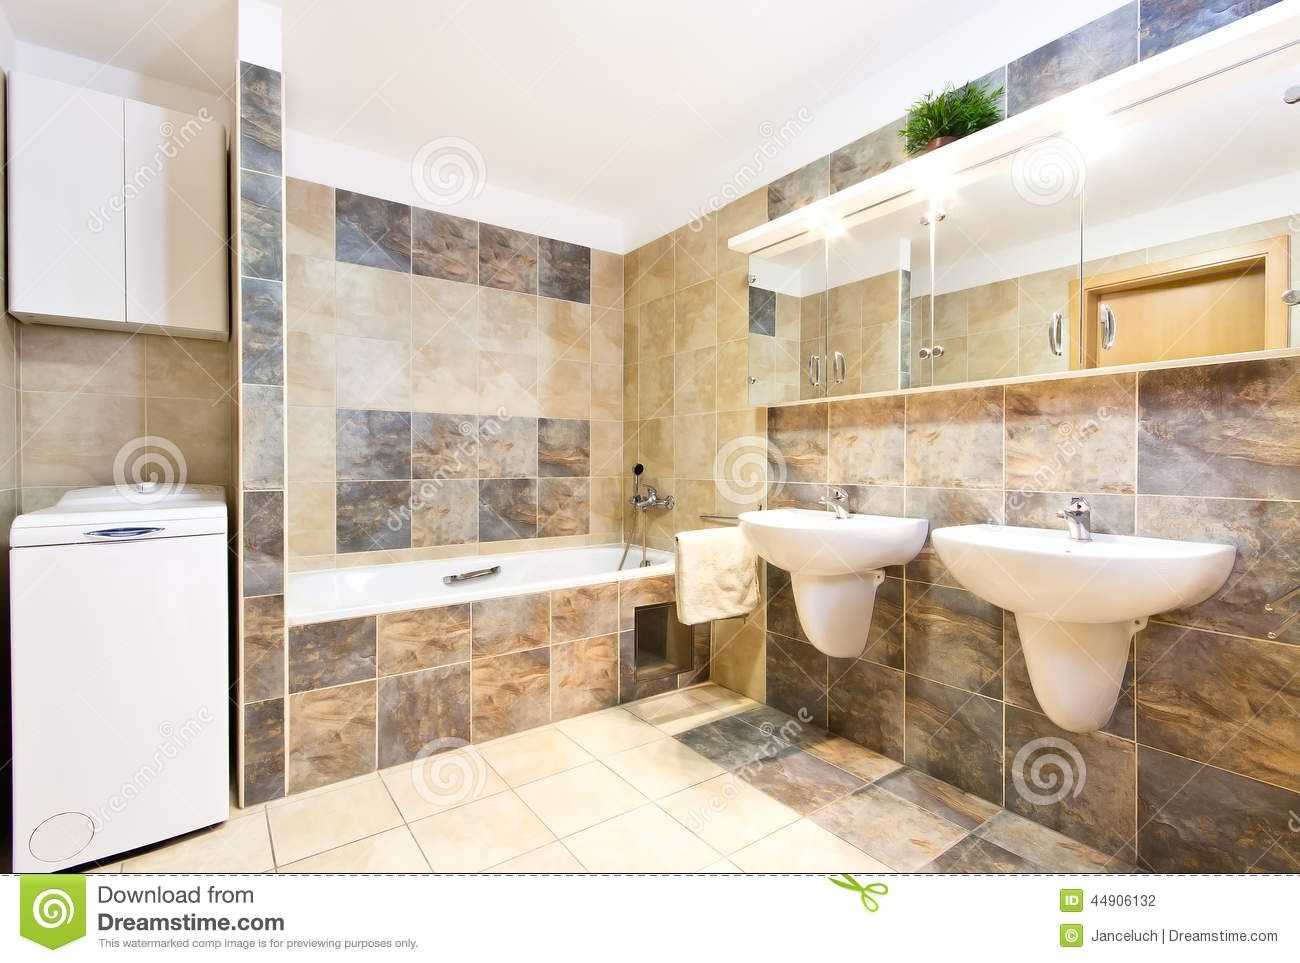 Modern Clean Bathroom With Two Washbasins Stock Photo  Image Of Mirror Stylish 44906132